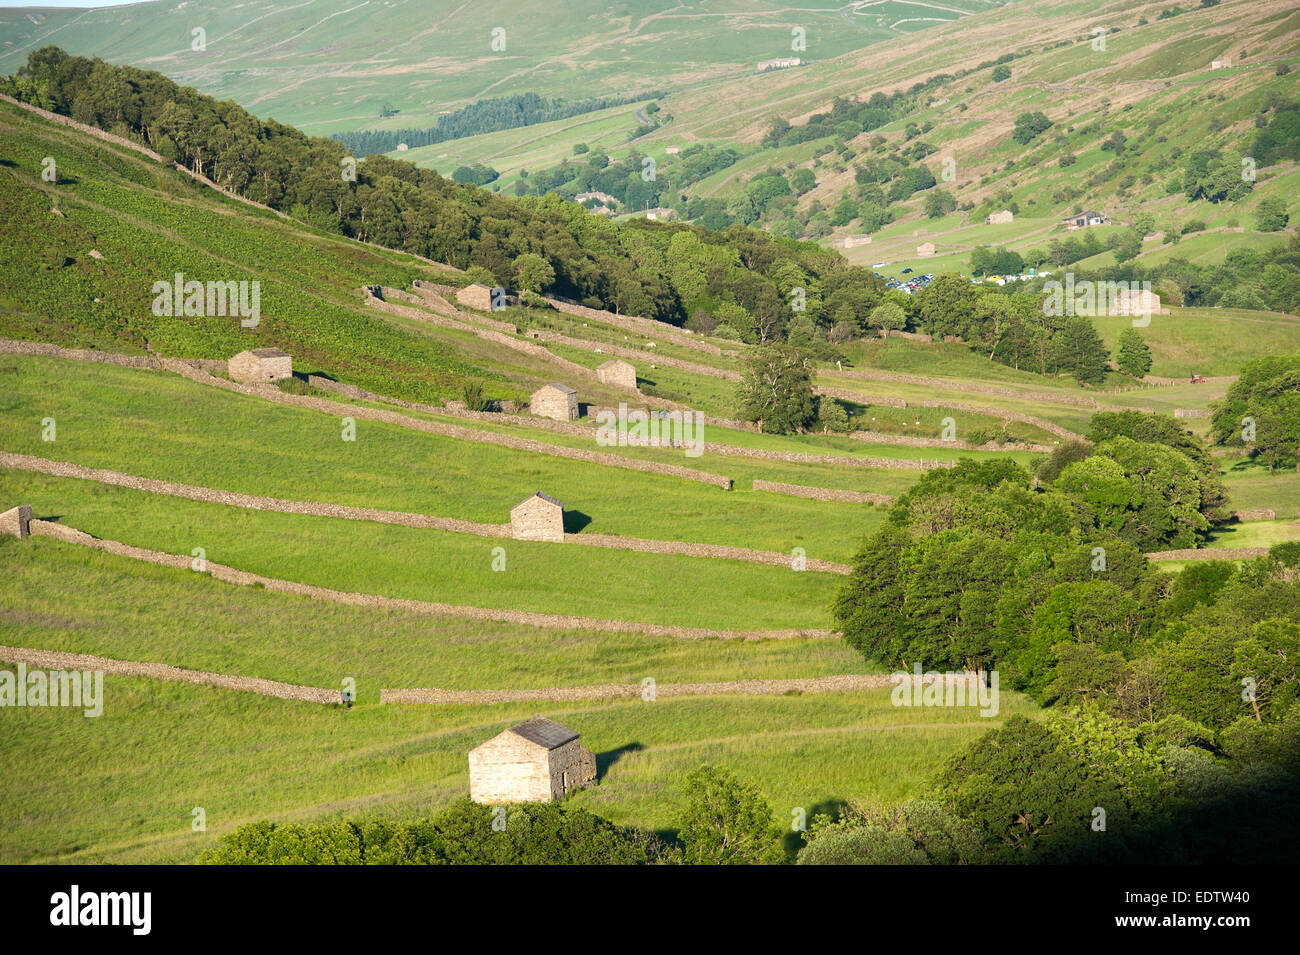 Barns and drystone walls in Swaledale near Thwaite. Yorkshire Dales National Park - Stock Image